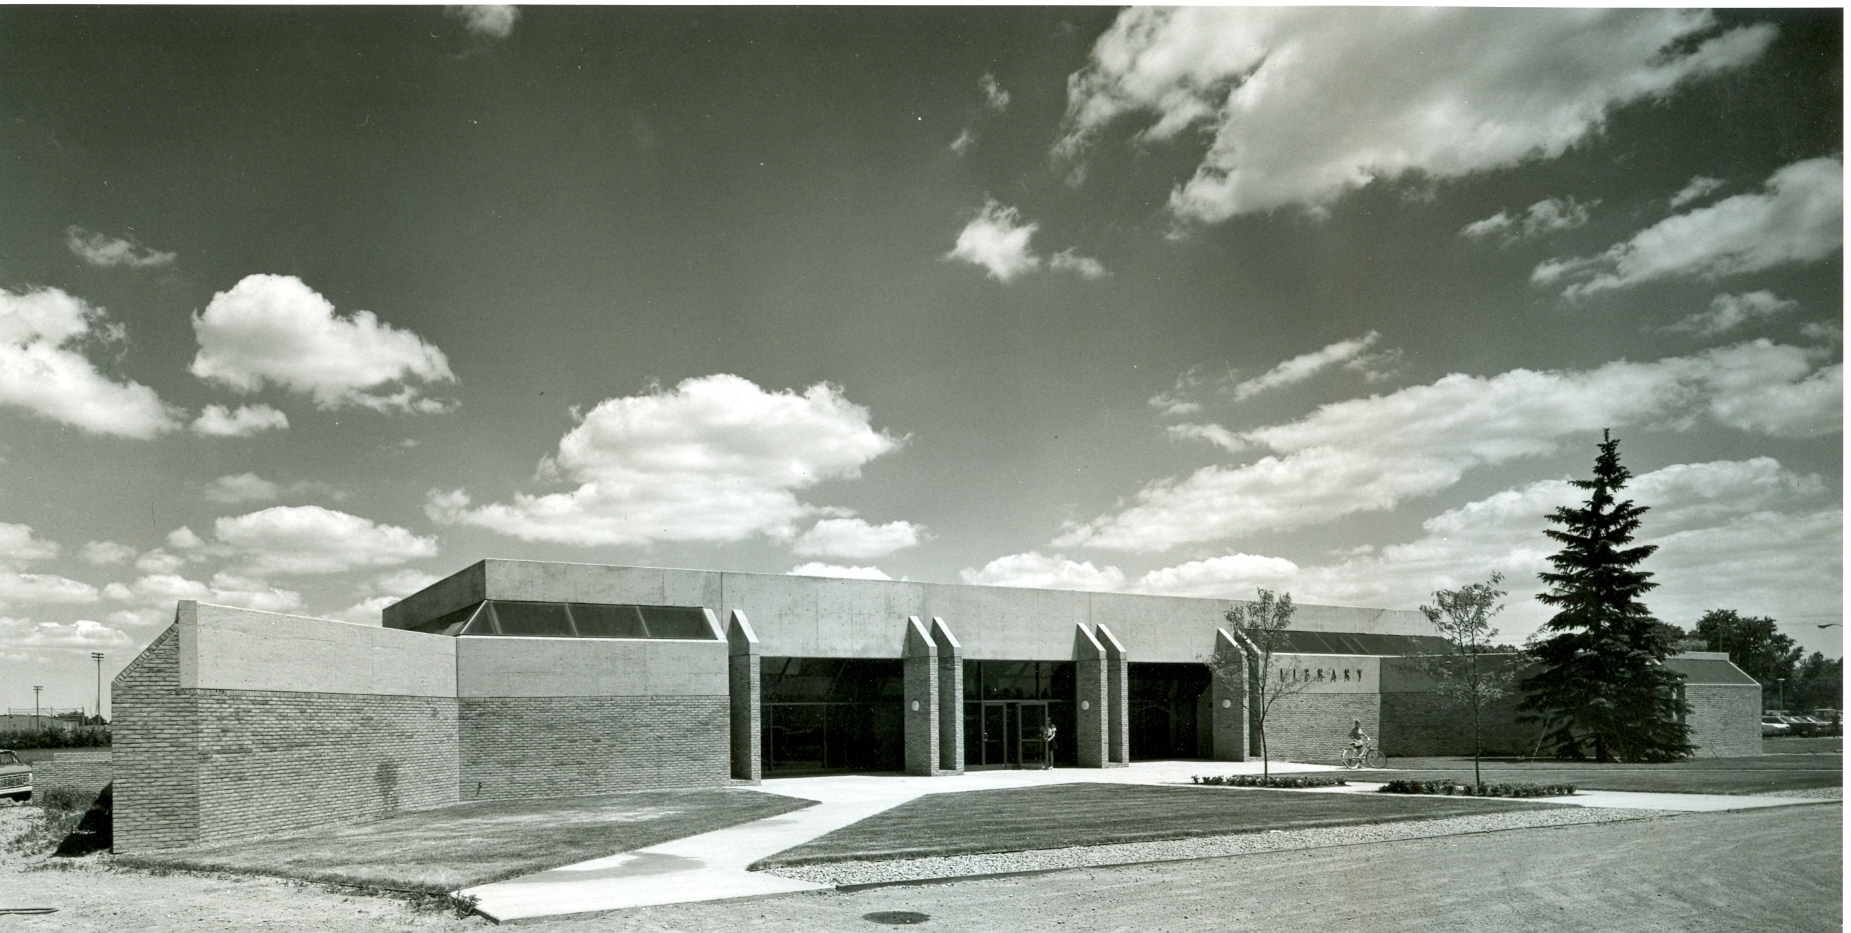 Original Troy Public Library 1971